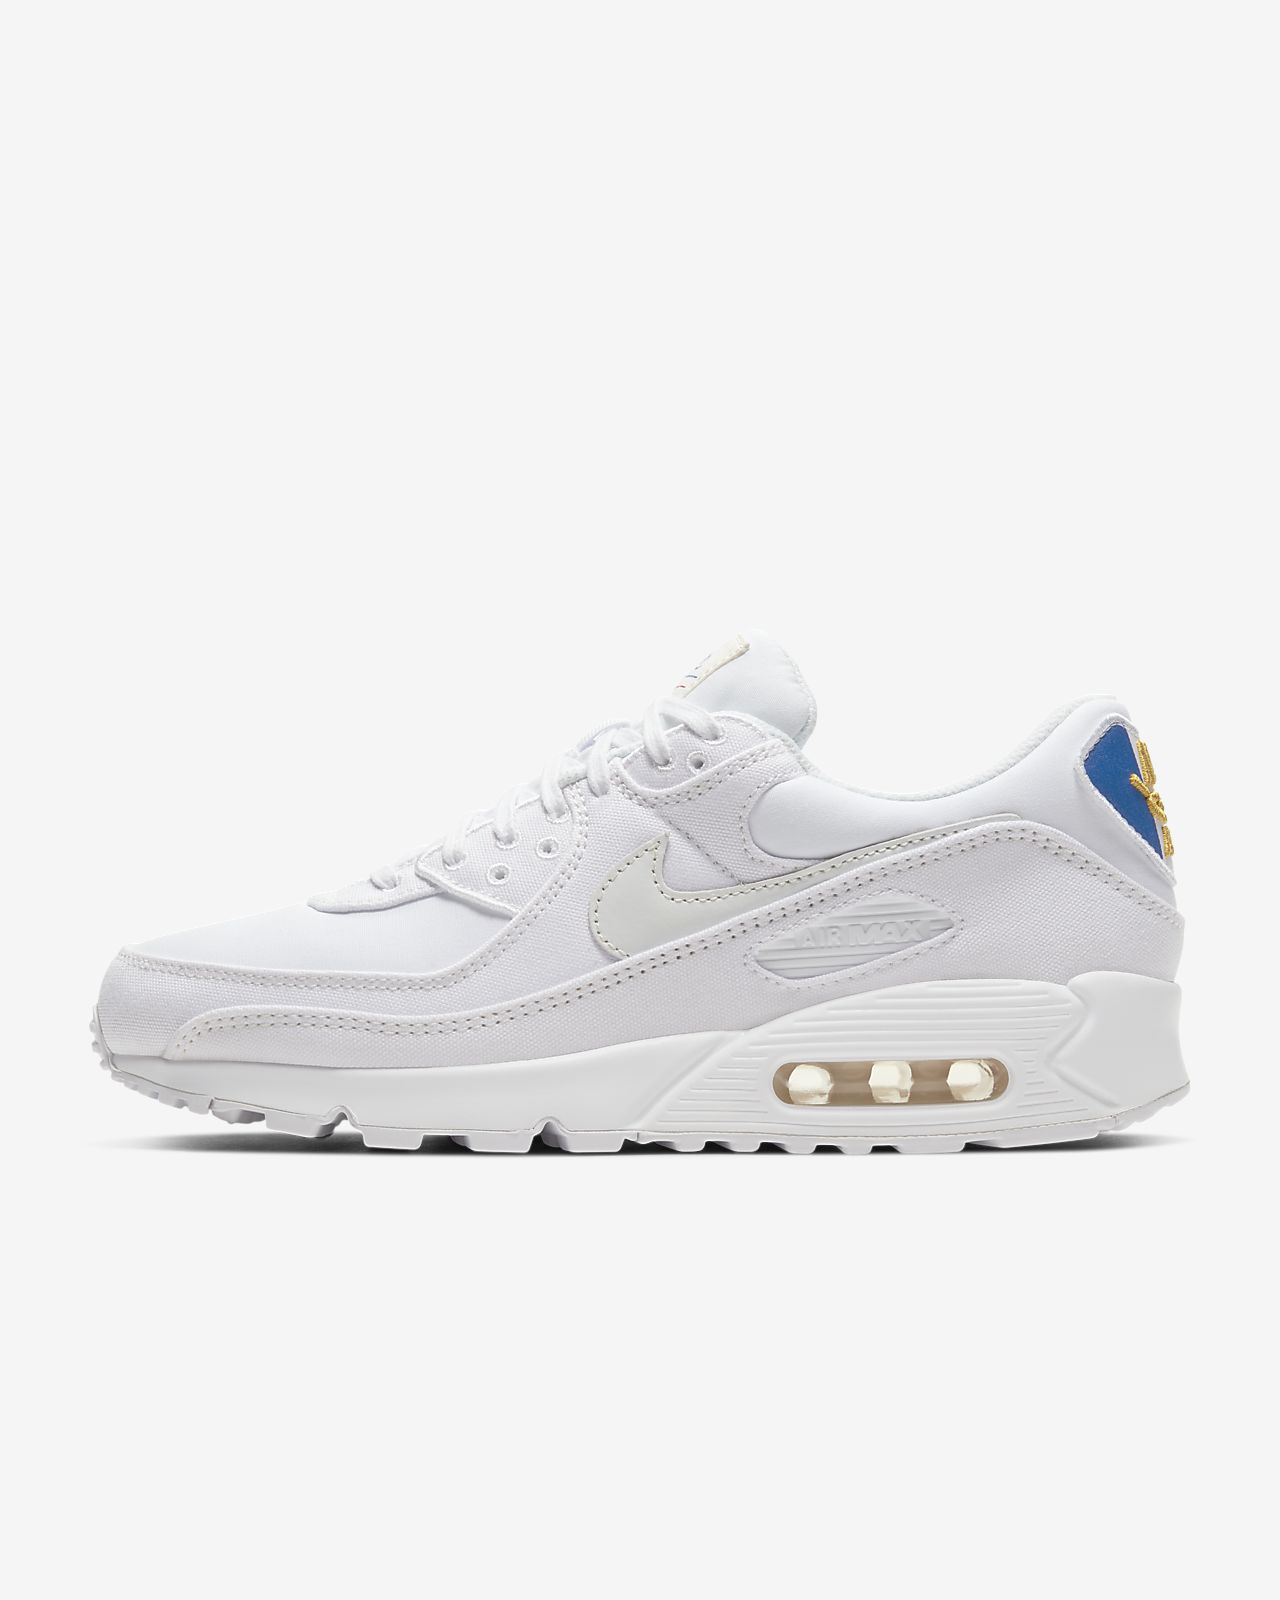 Nike Air Max 90 Premium Men's Shoes